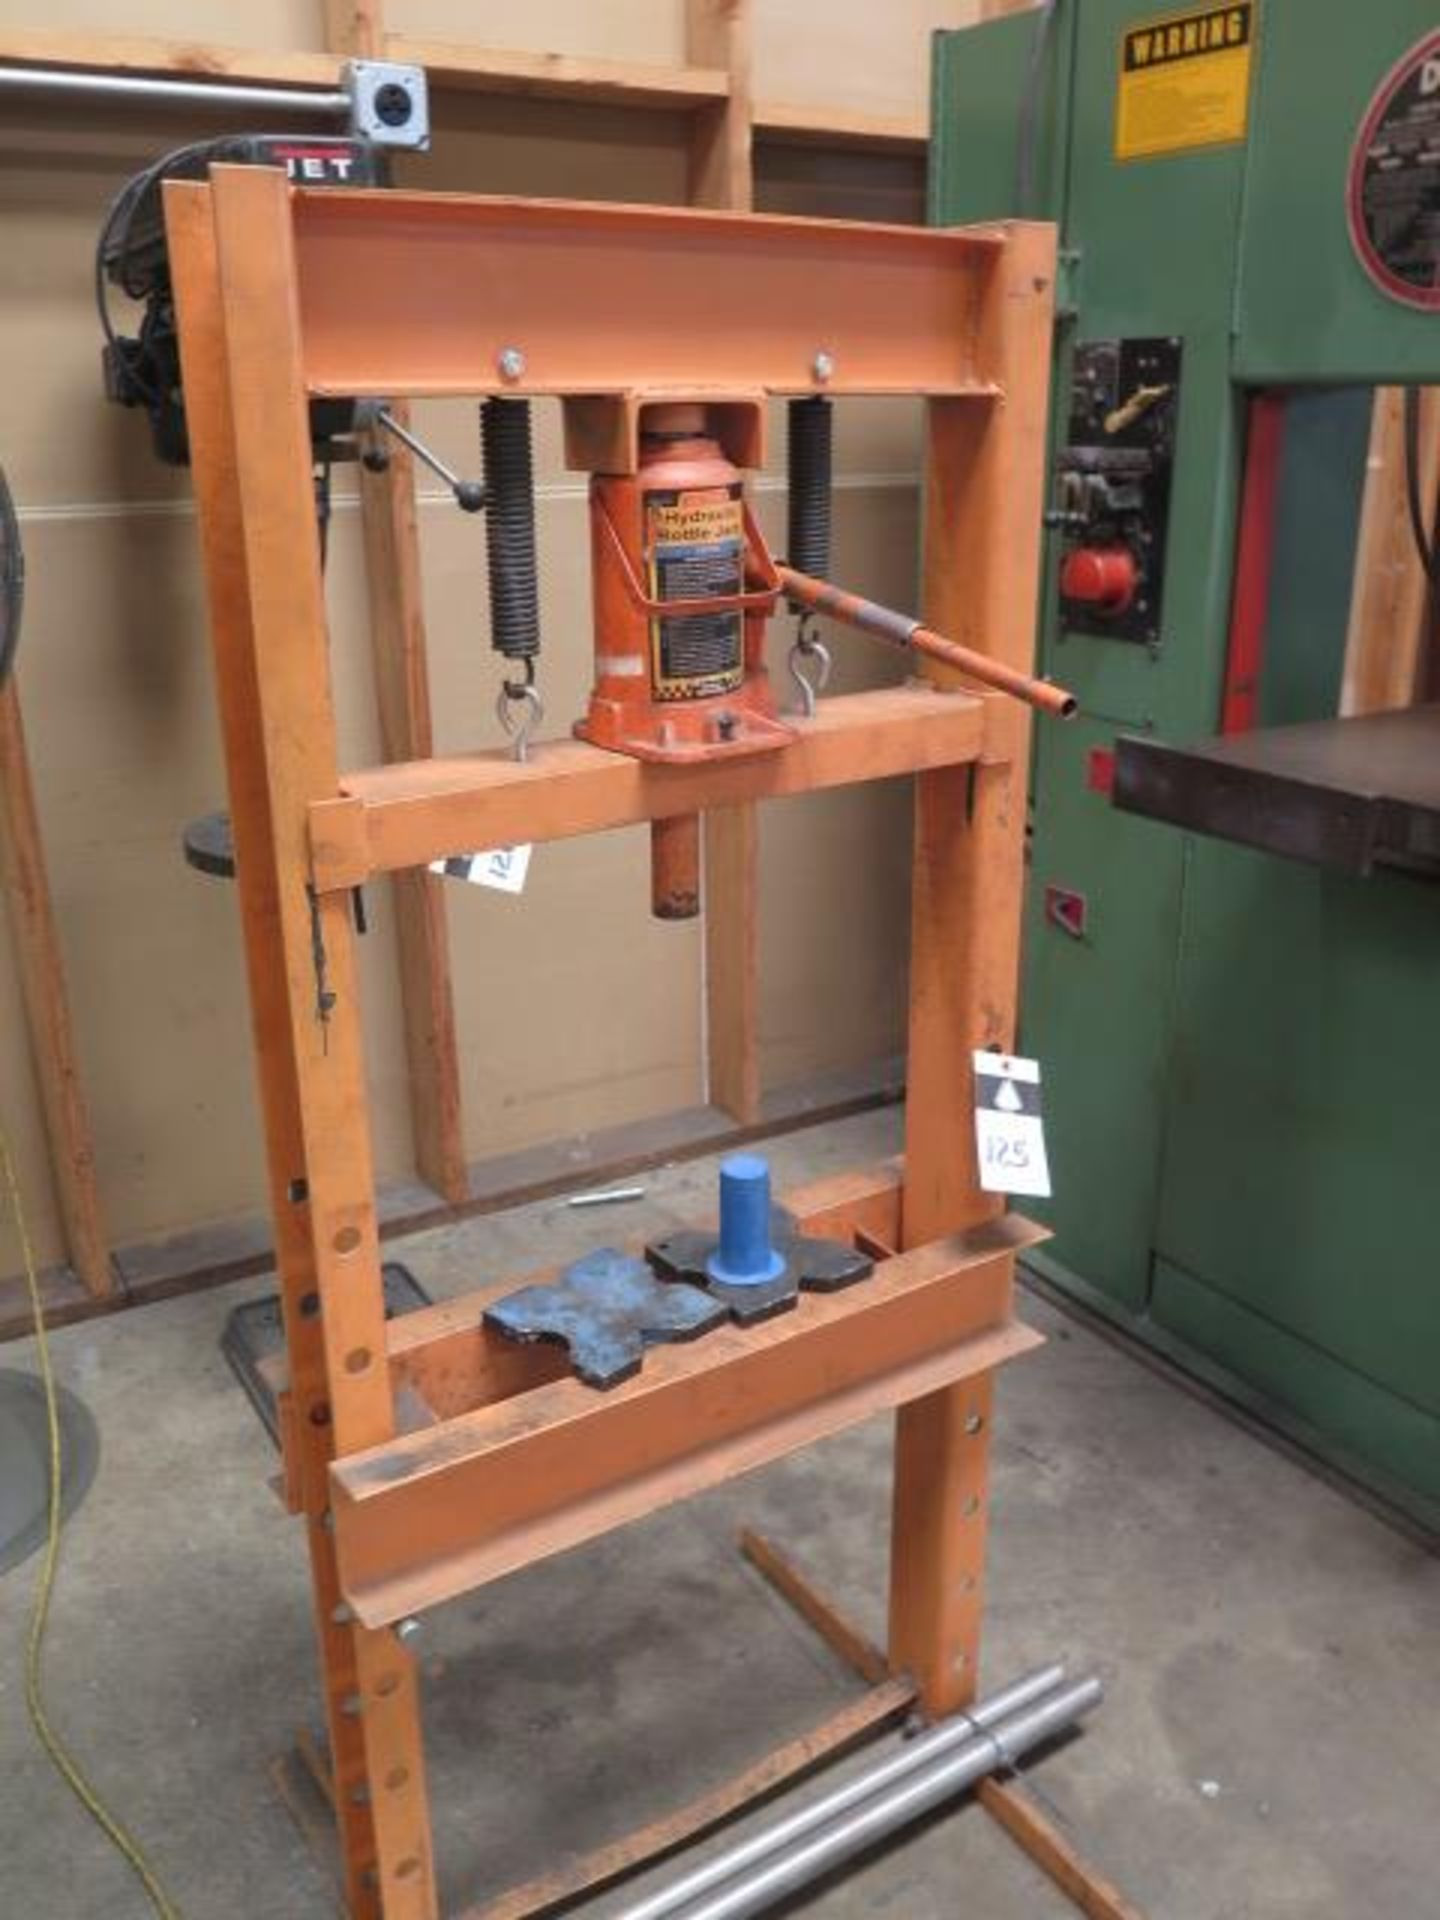 Central Hydraulics 20 Ton Hydraulic H-Frame Press (SOLD AS-IS - NO WARRANTY) - Image 2 of 5